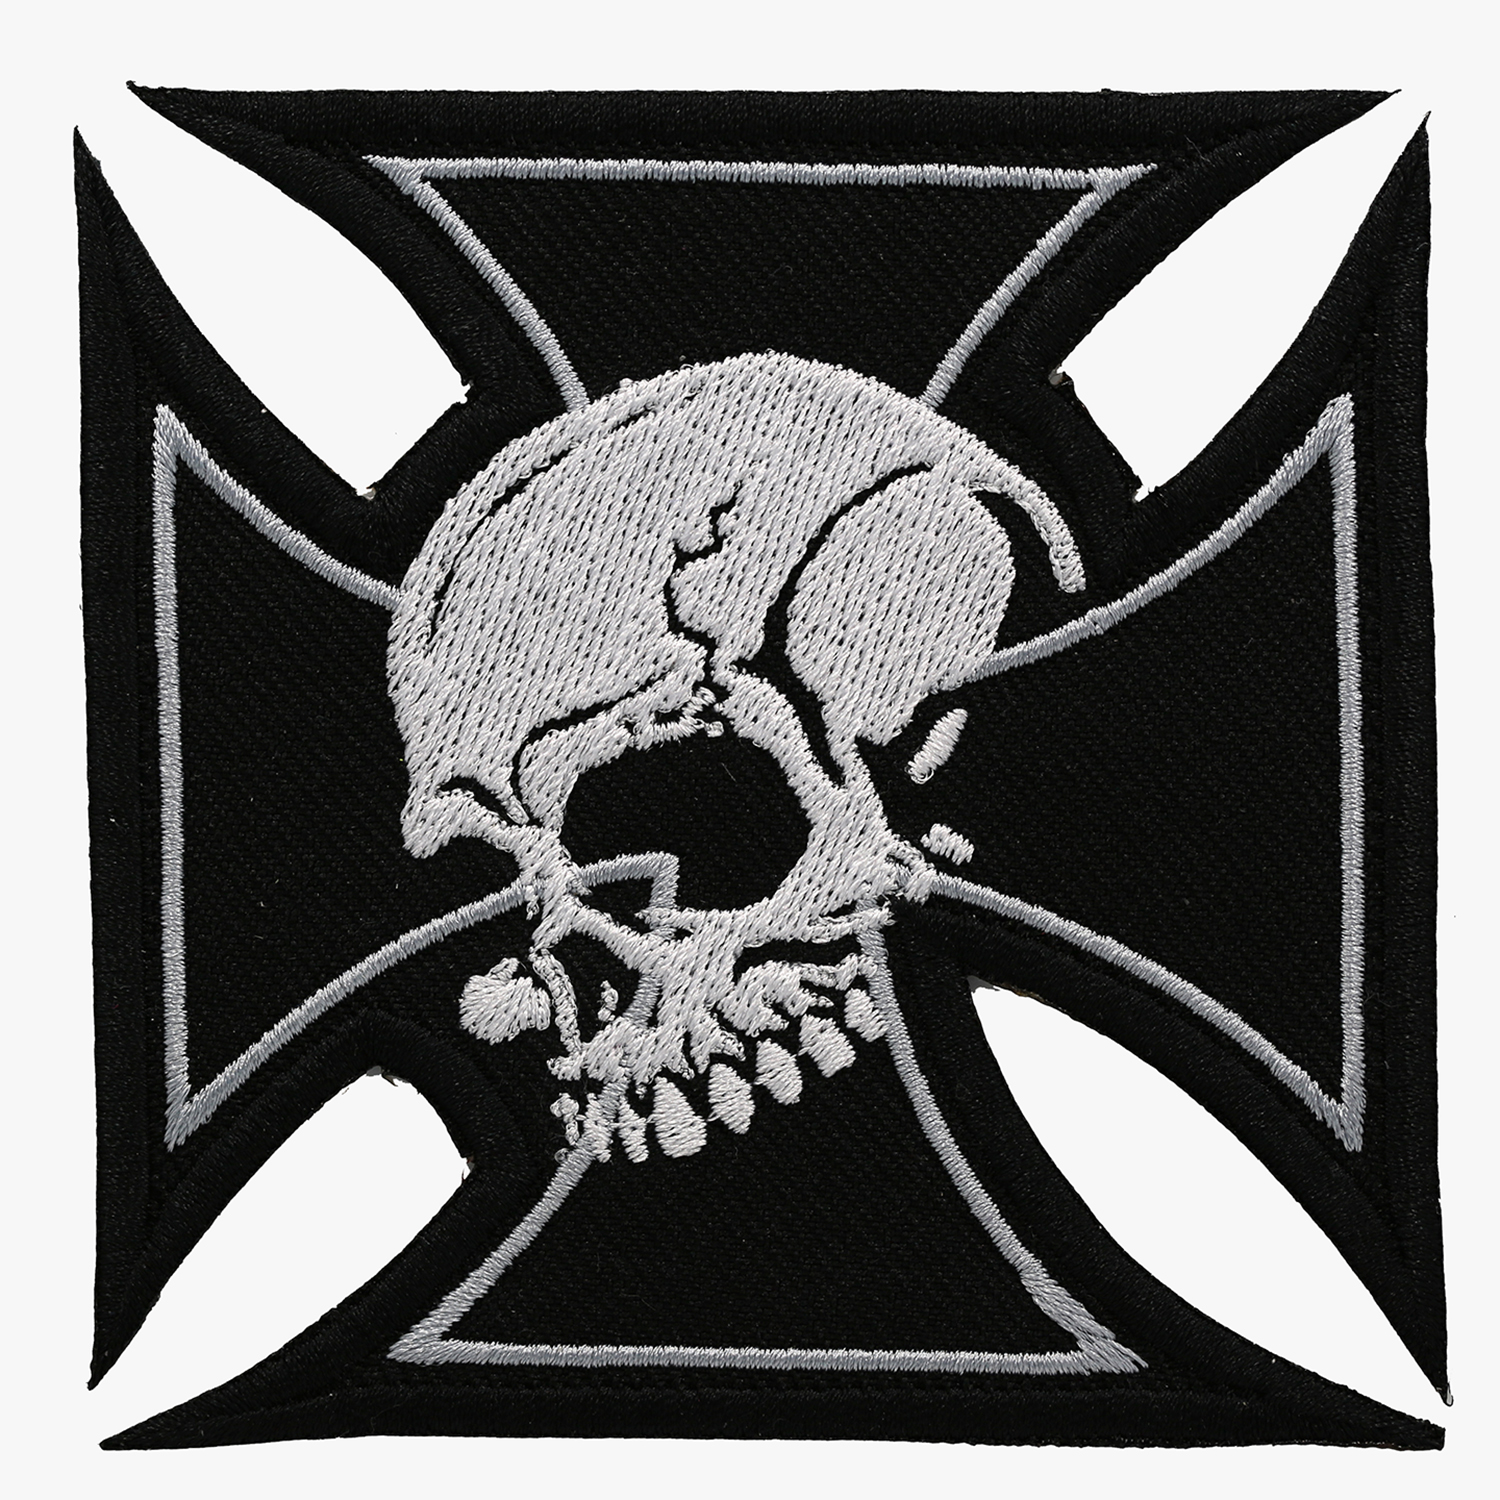 IRON CROSS SKULL BIKER VEST PATCH